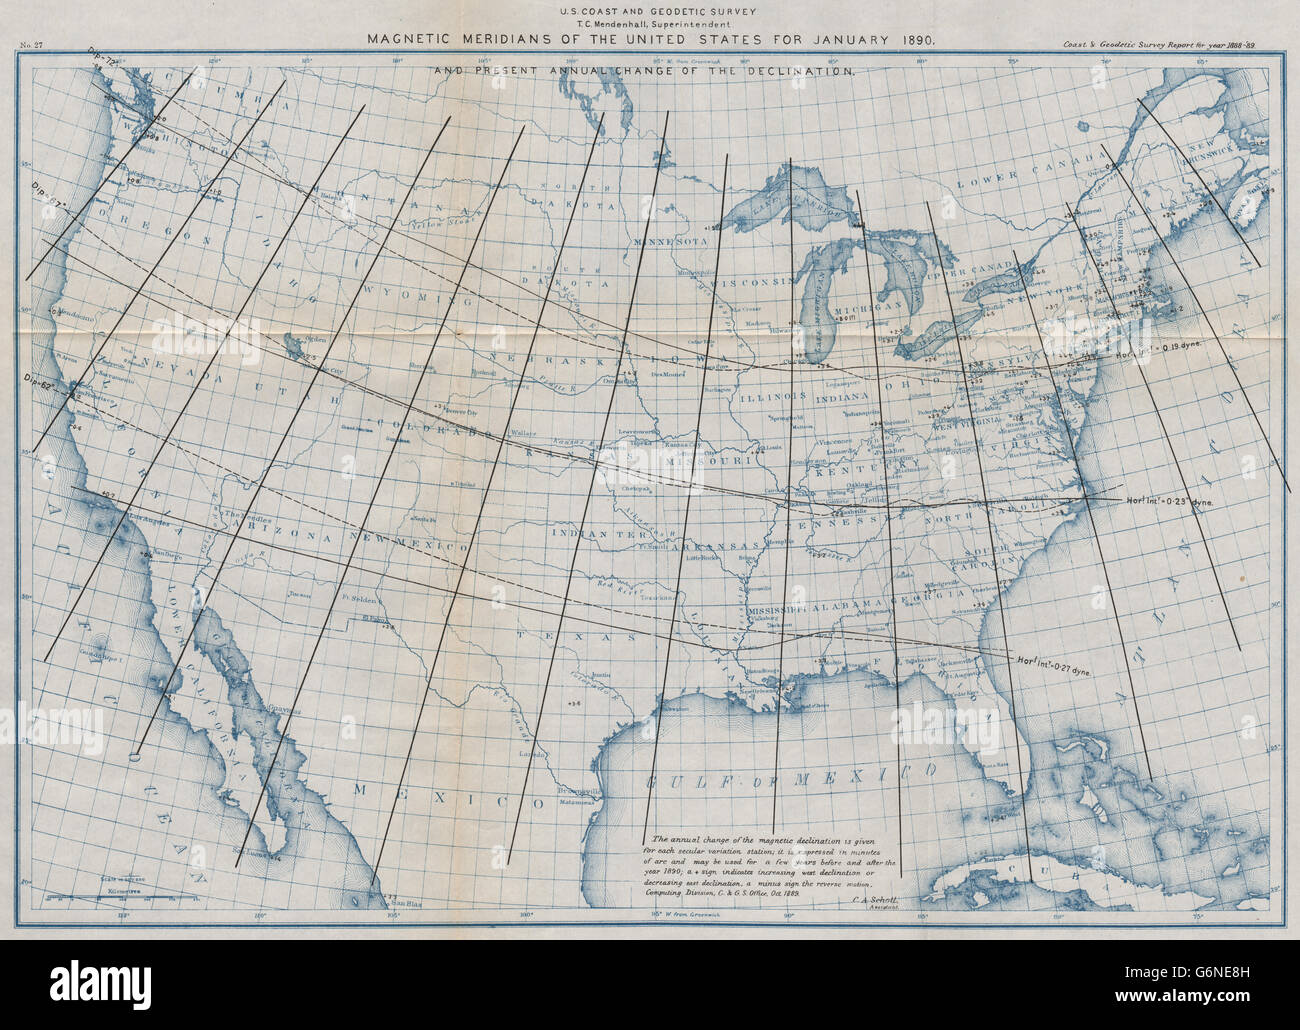 USA: Magnetic meridians January 1890. Annual declination change ...